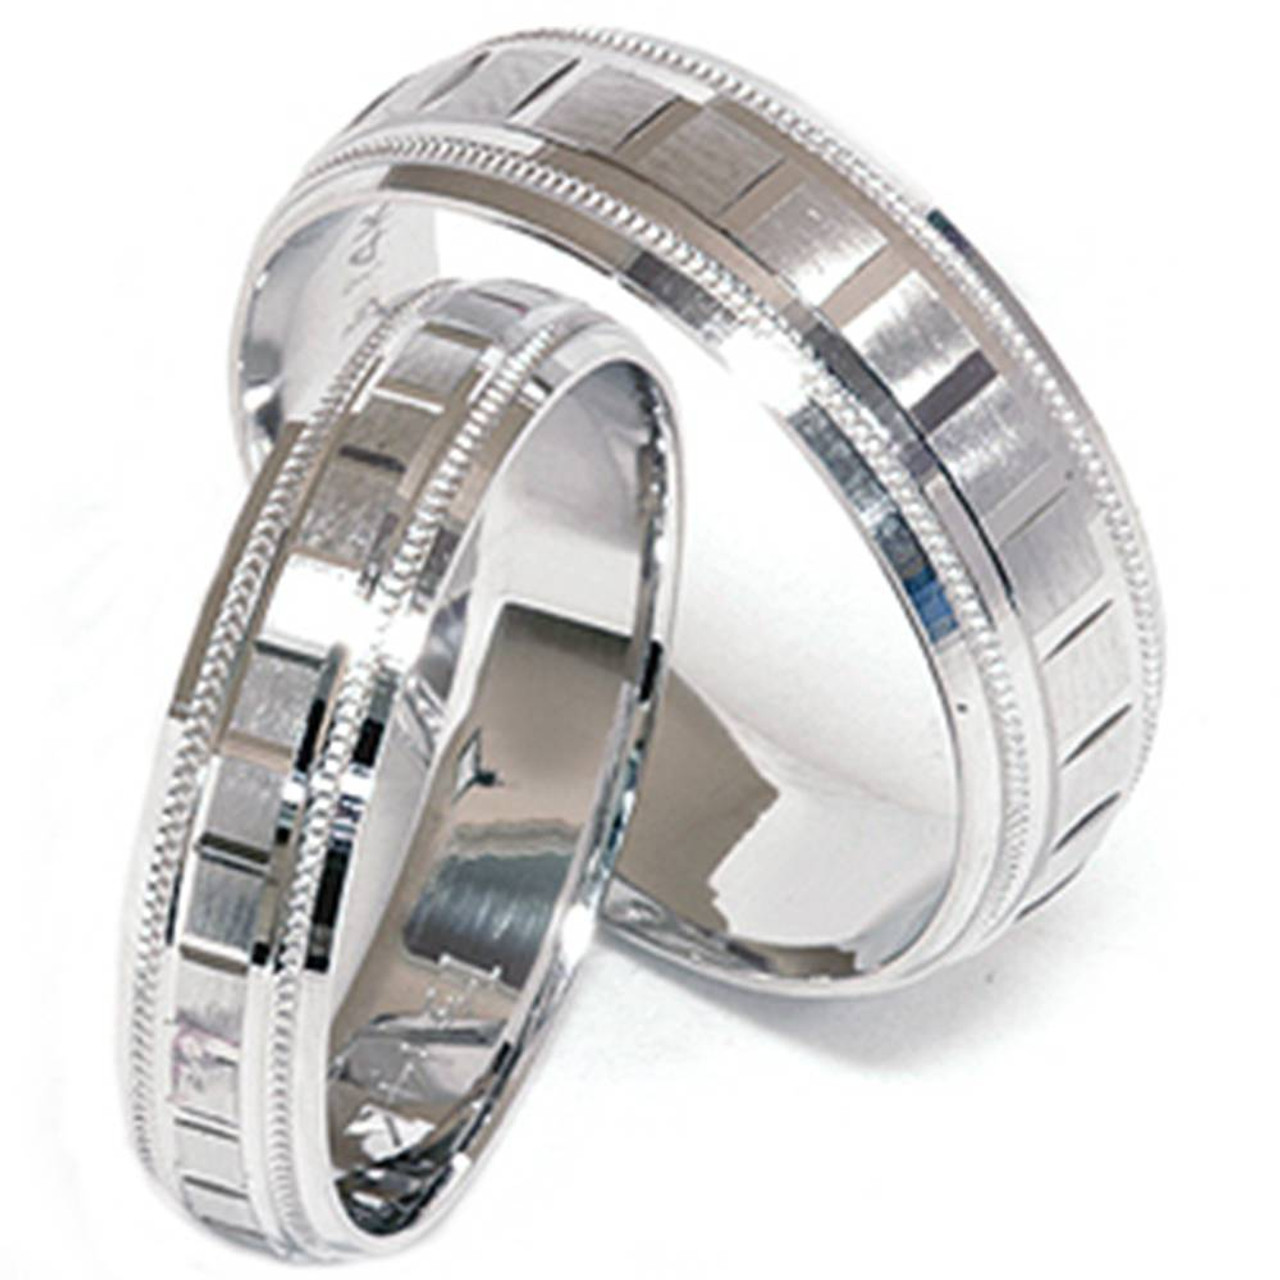 His And Hers Matching Wedding Bands Cheap.Matching His Hers White Gold Wedding Band Ring New Set